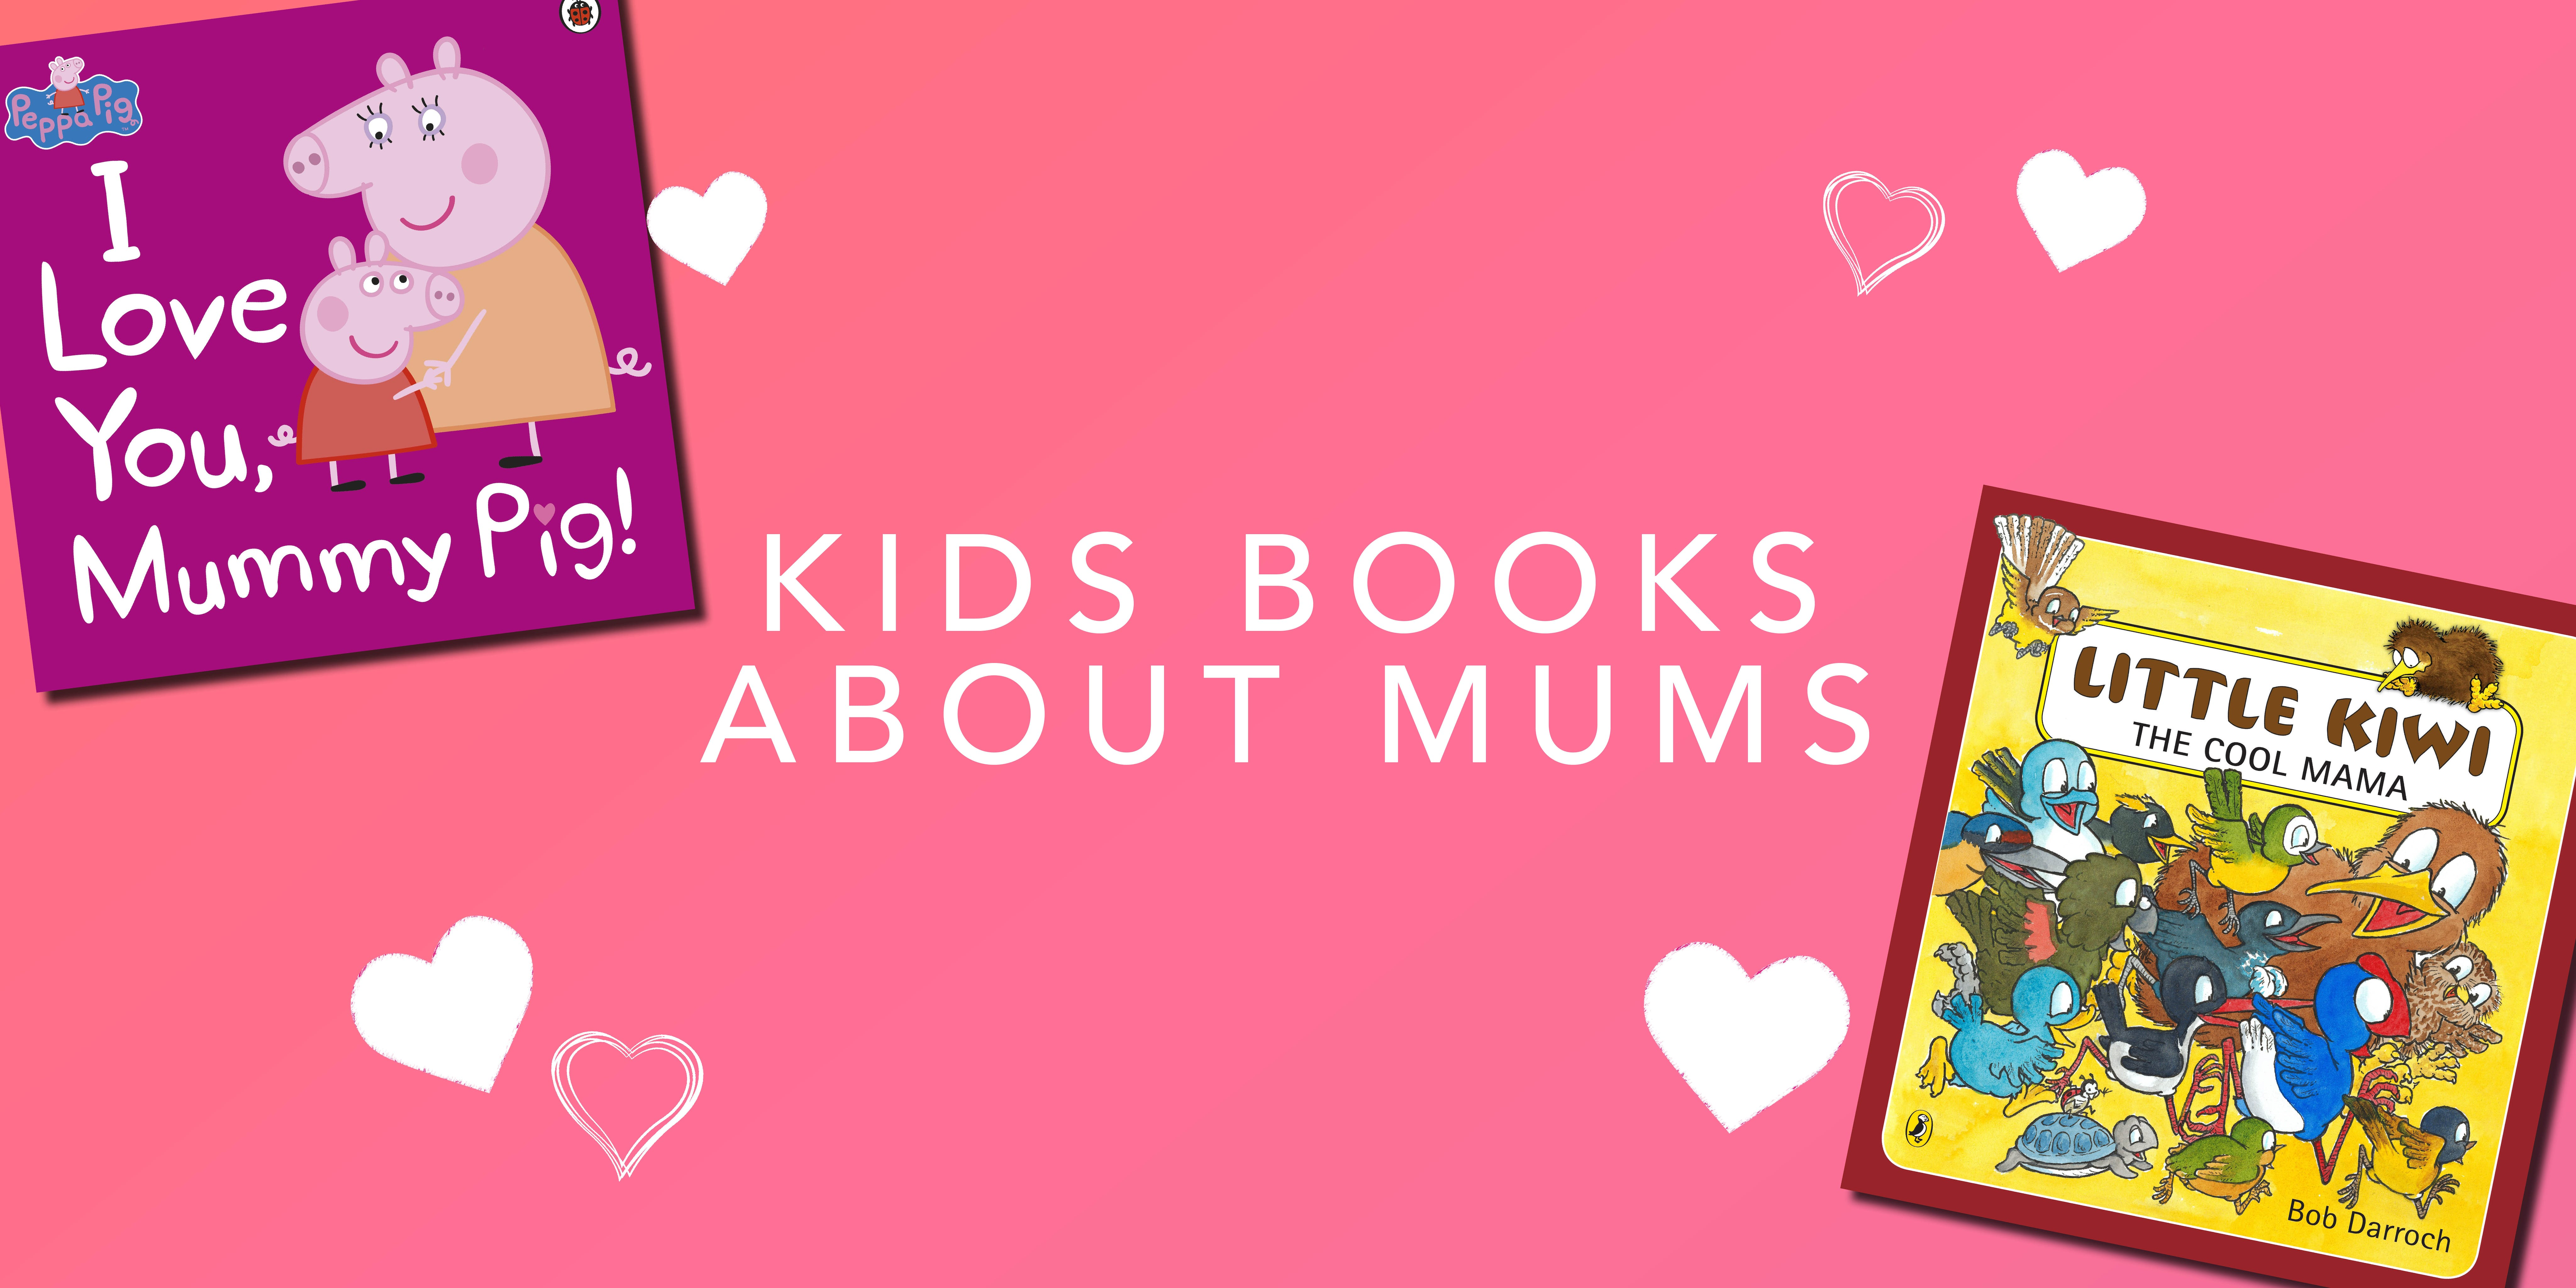 Kids books about mums for Mother's Day